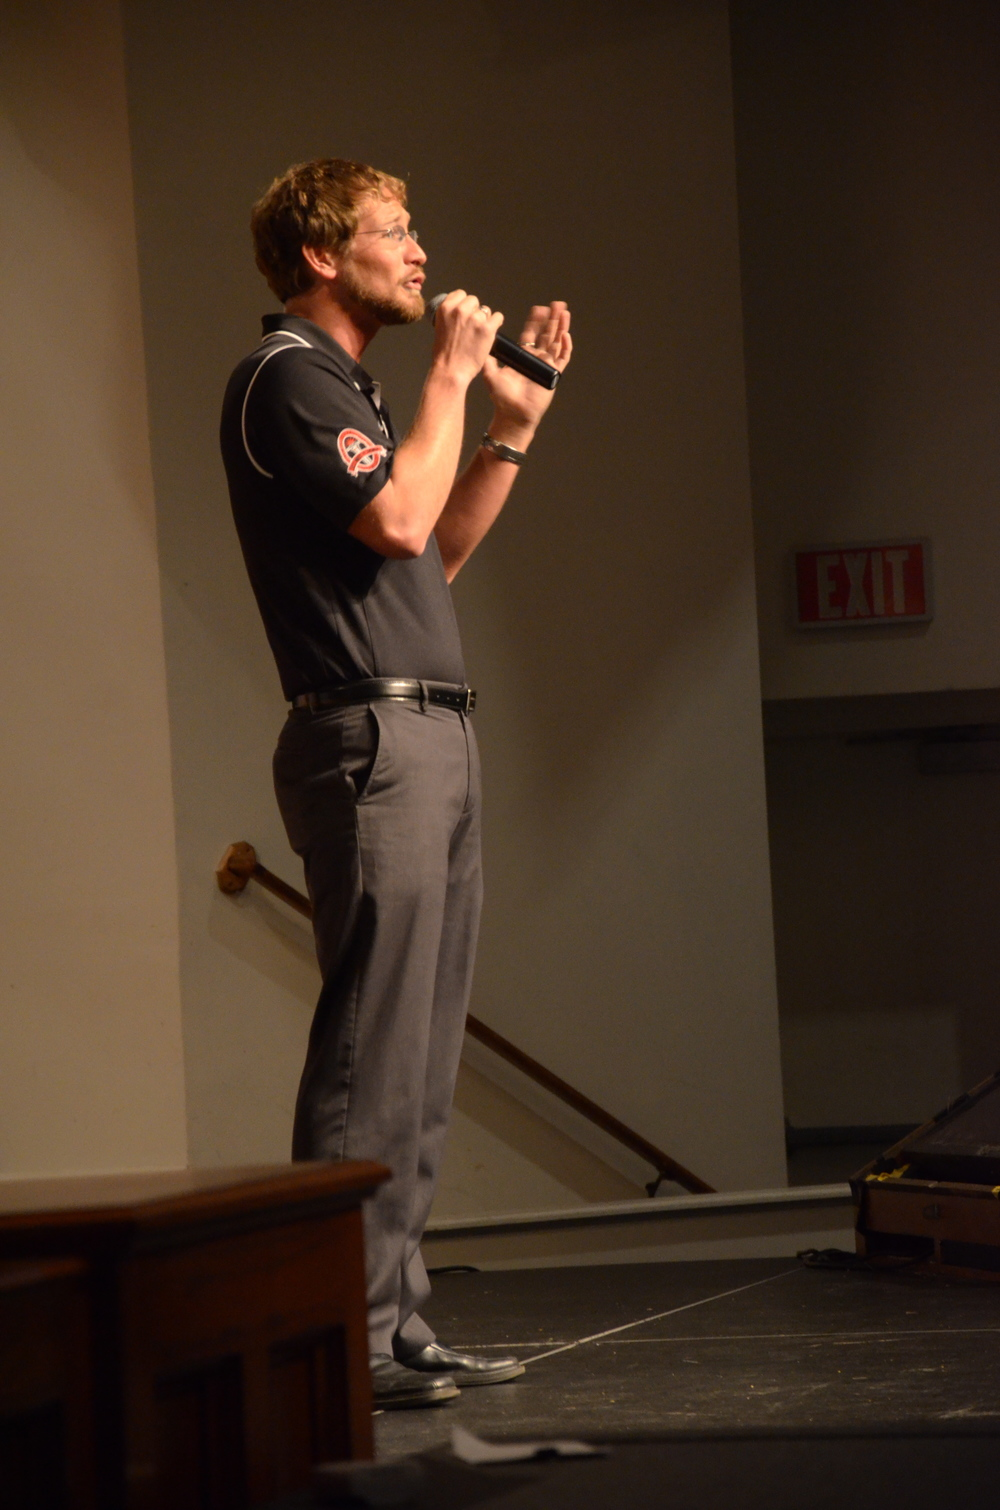 Cory Truax, admissions counselor, is laying out the nitty-gritty details of the price to attend NGU.